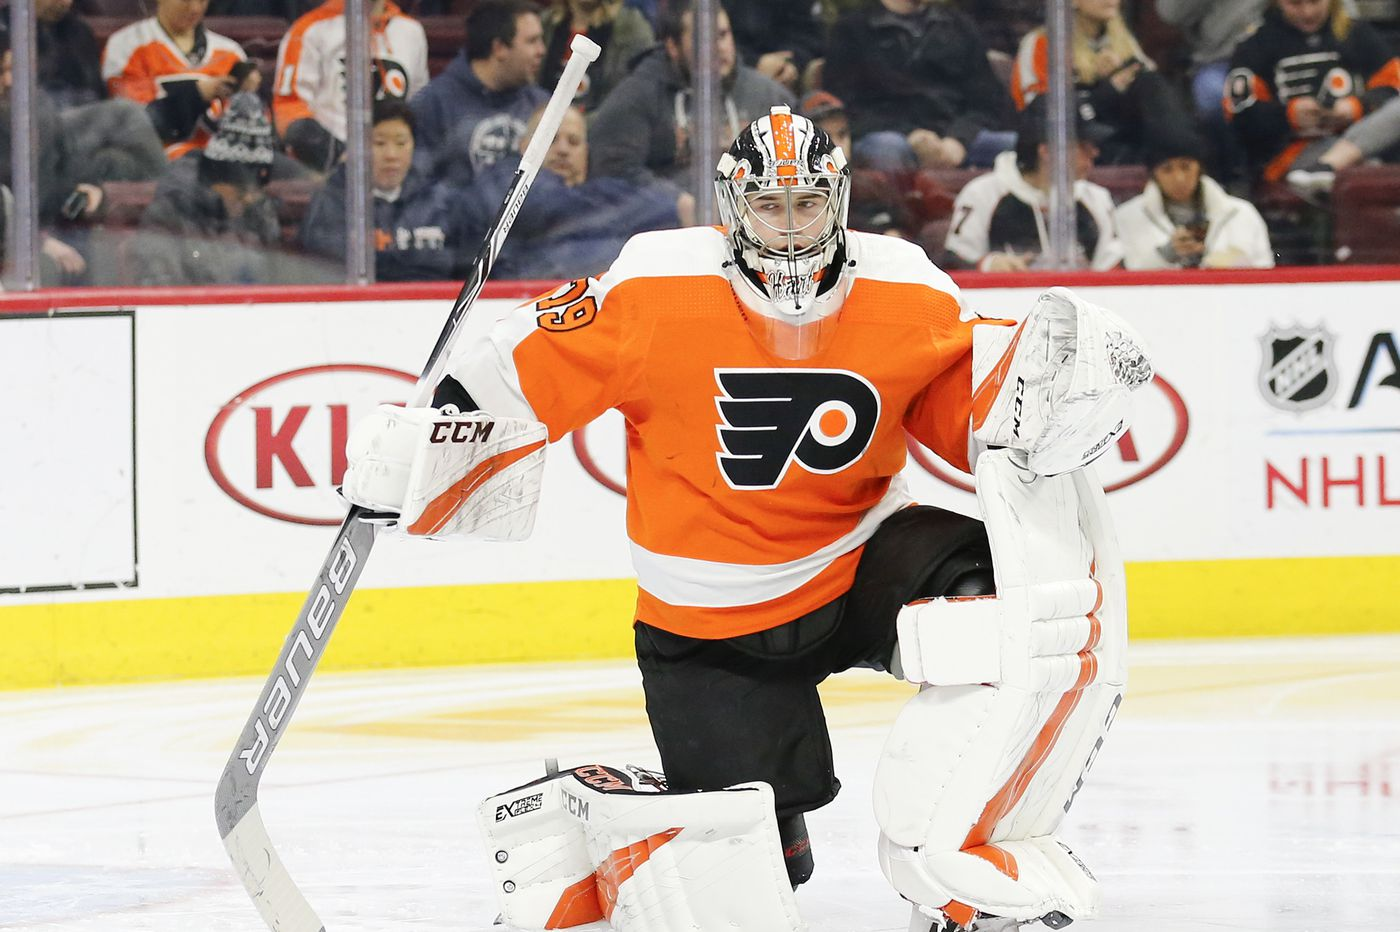 Flyers beat Canadiens behind strong showings from Carter Hart, Nolan Patrick